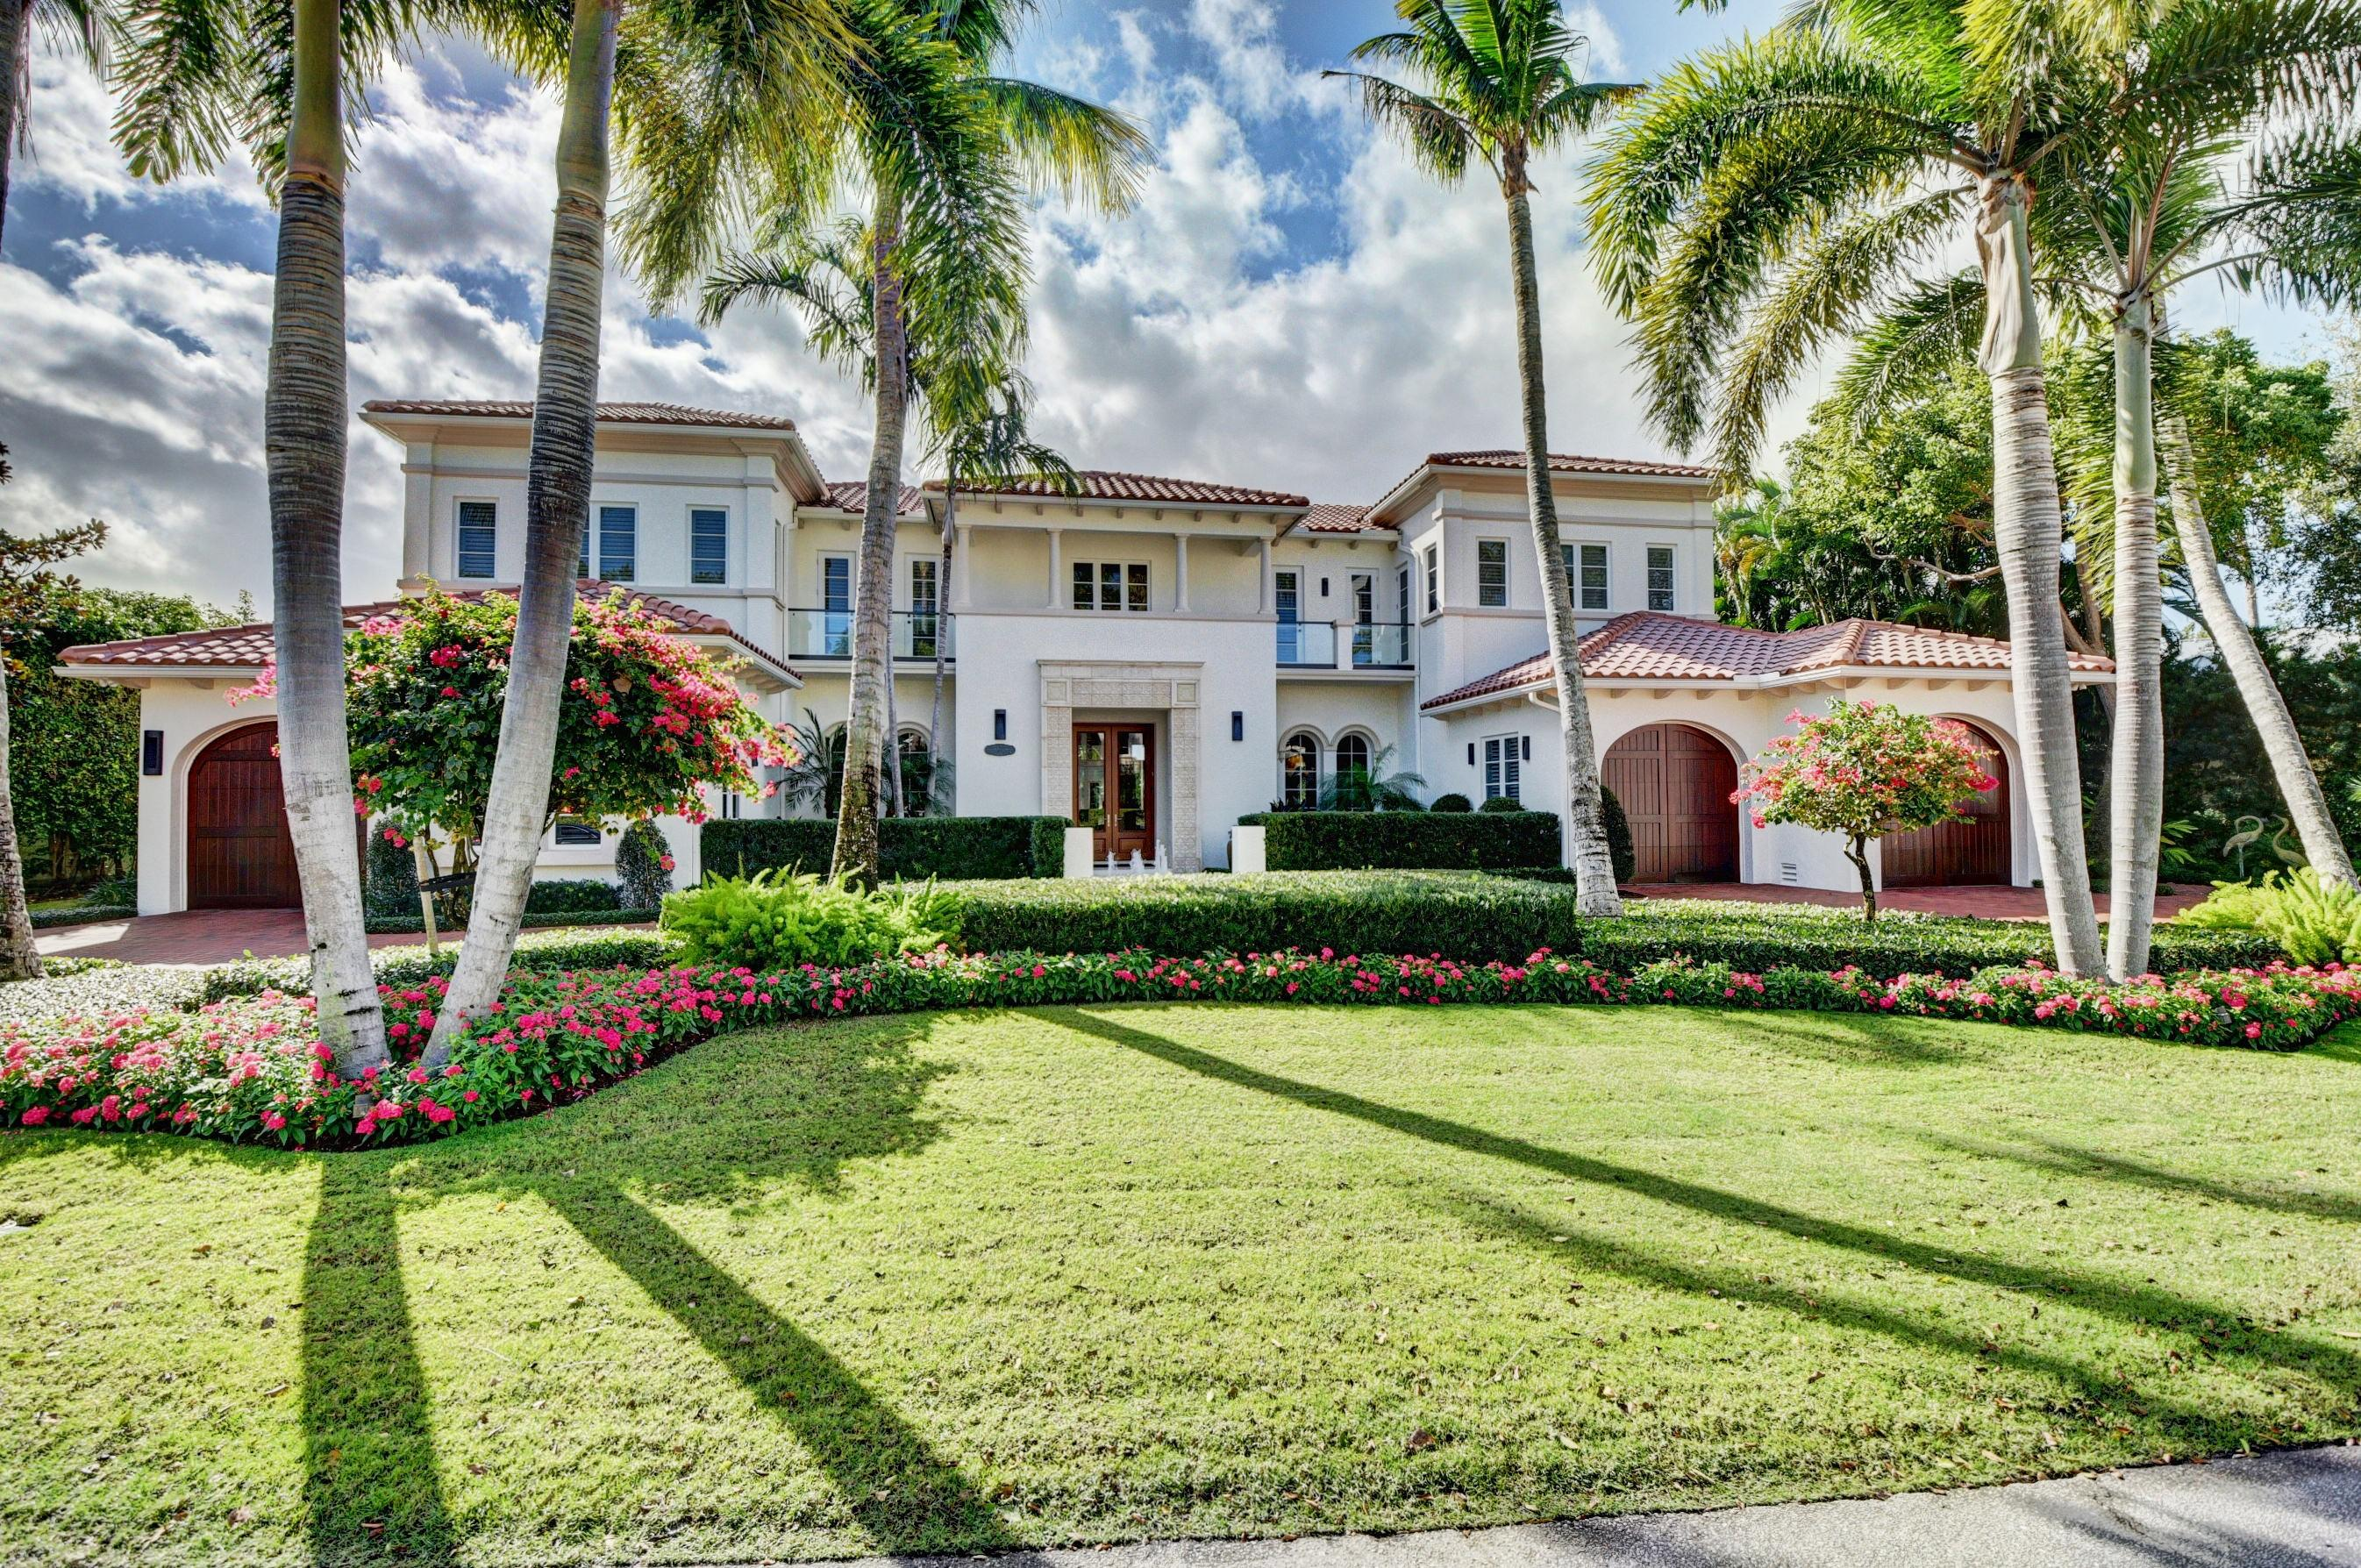 1880 Sabal Palm Drive, Boca Raton, Florida 33432, 6 Bedrooms Bedrooms, ,7.2 BathroomsBathrooms,Single Family,For Sale,ROYAL PALM YACHT AND COUNTRY CLUB,Sabal Palm,RX-10507783